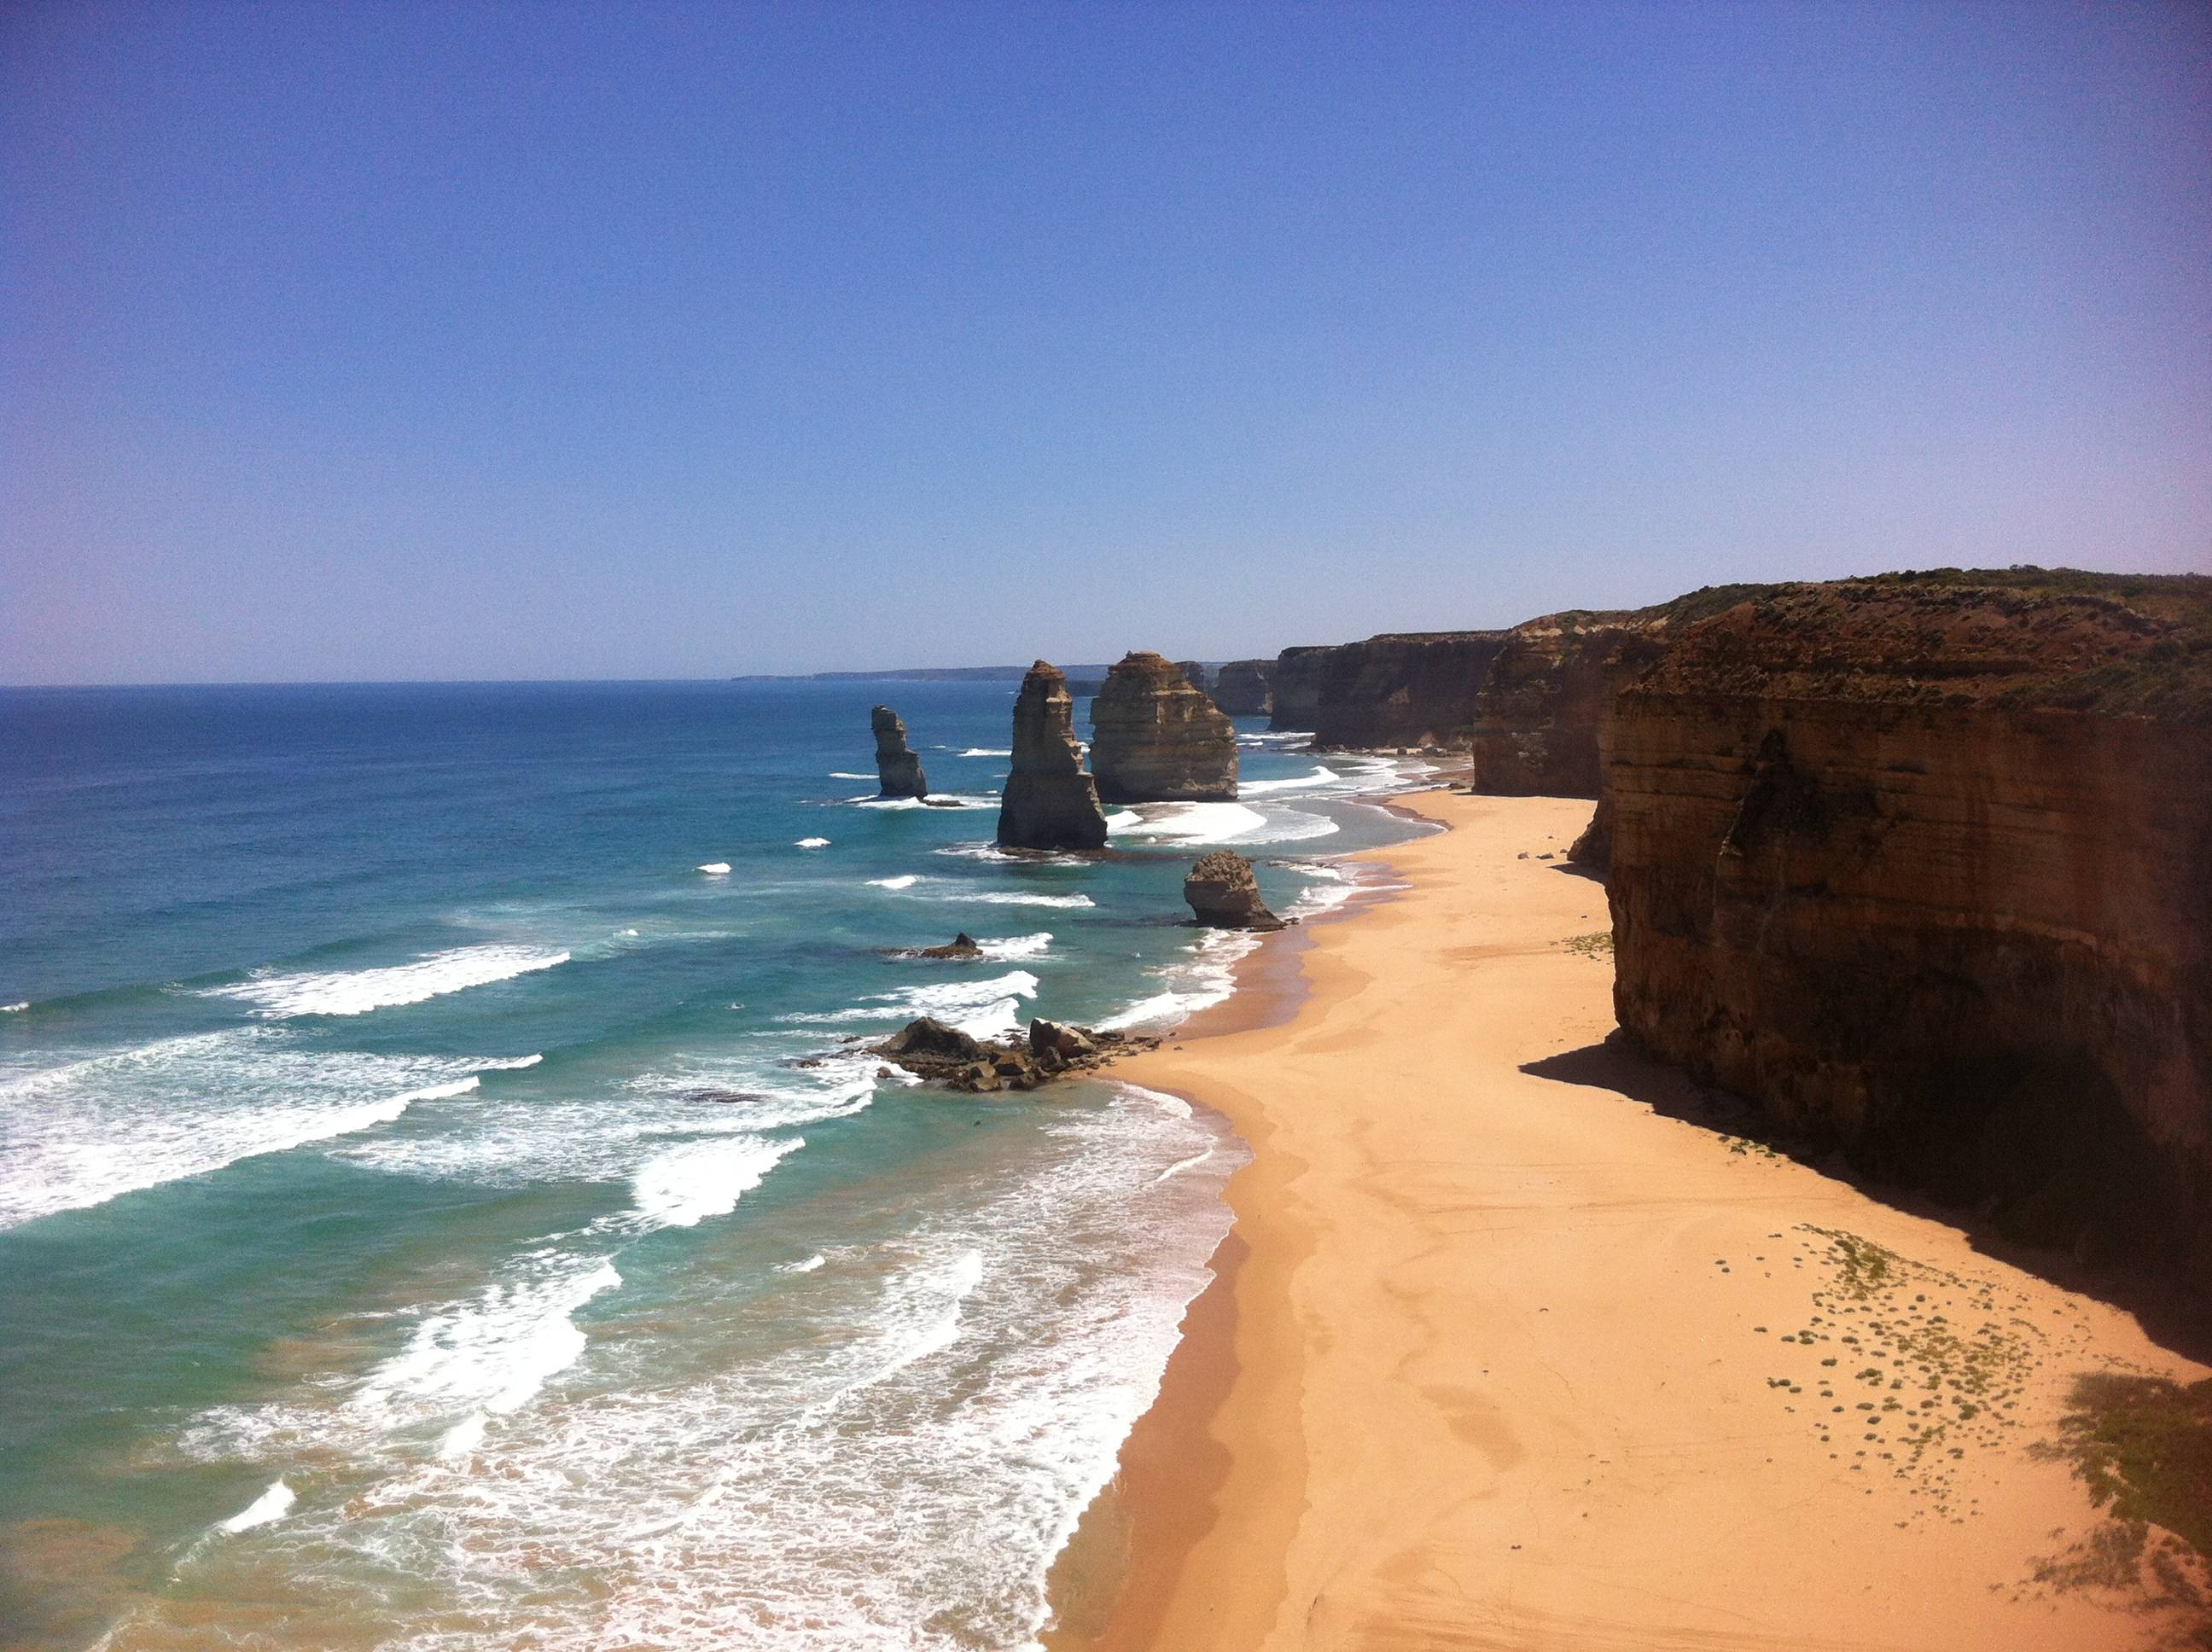 Photo 3: The great ocean road